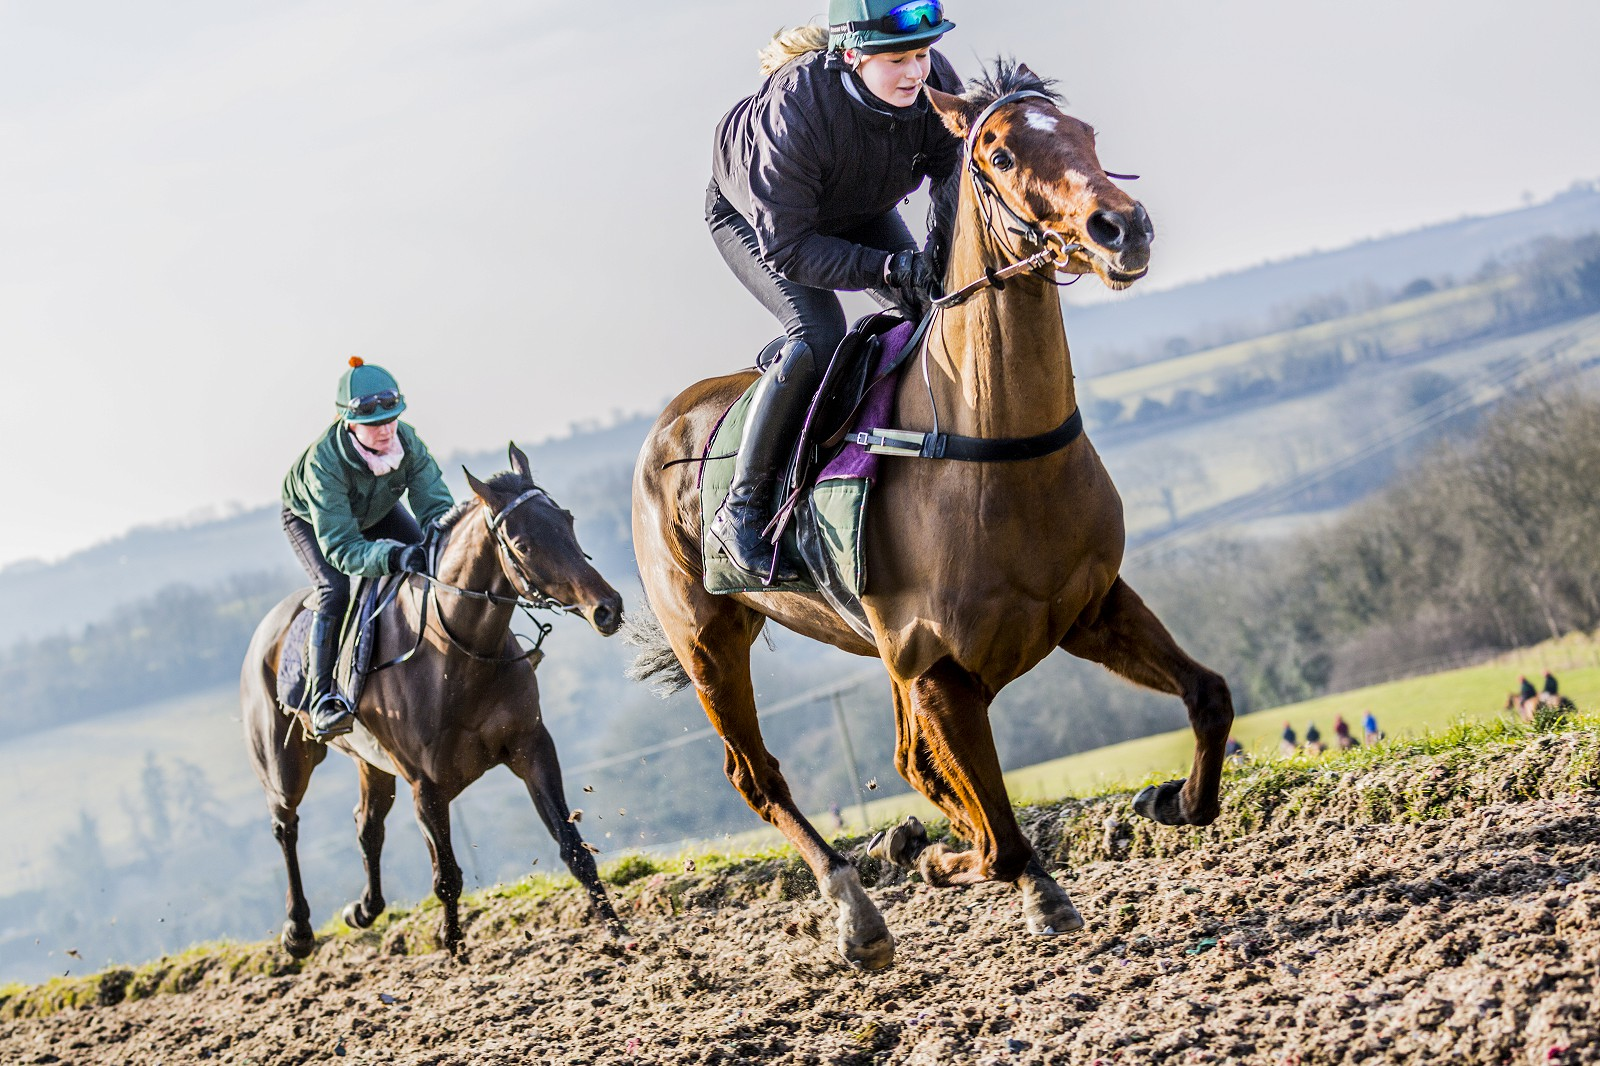 Canter Carpet equestrian surface racing gallops. Nigel Twiston Davies racehorses